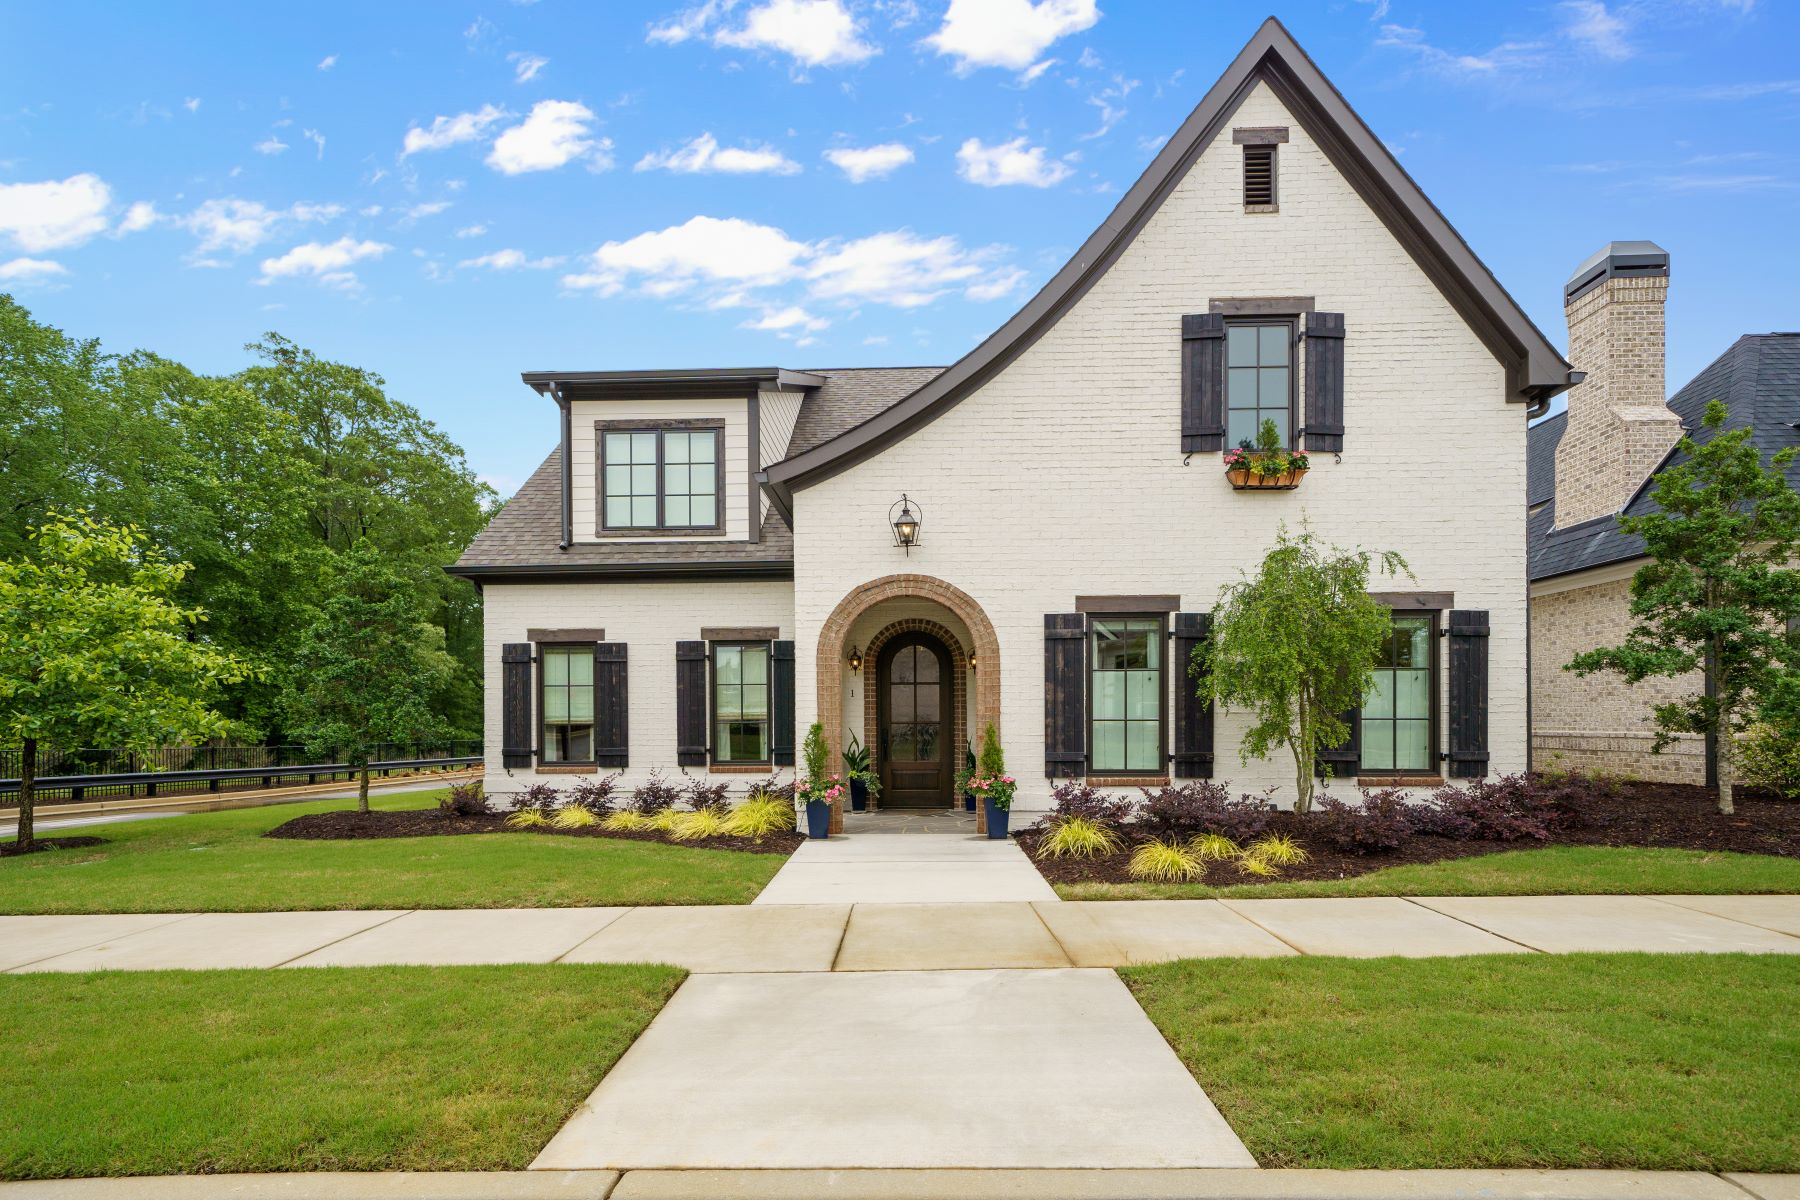 Single Family Homes for Sale at Bella Grove 1 Jessen Drive Greenville, South Carolina 29607 United States